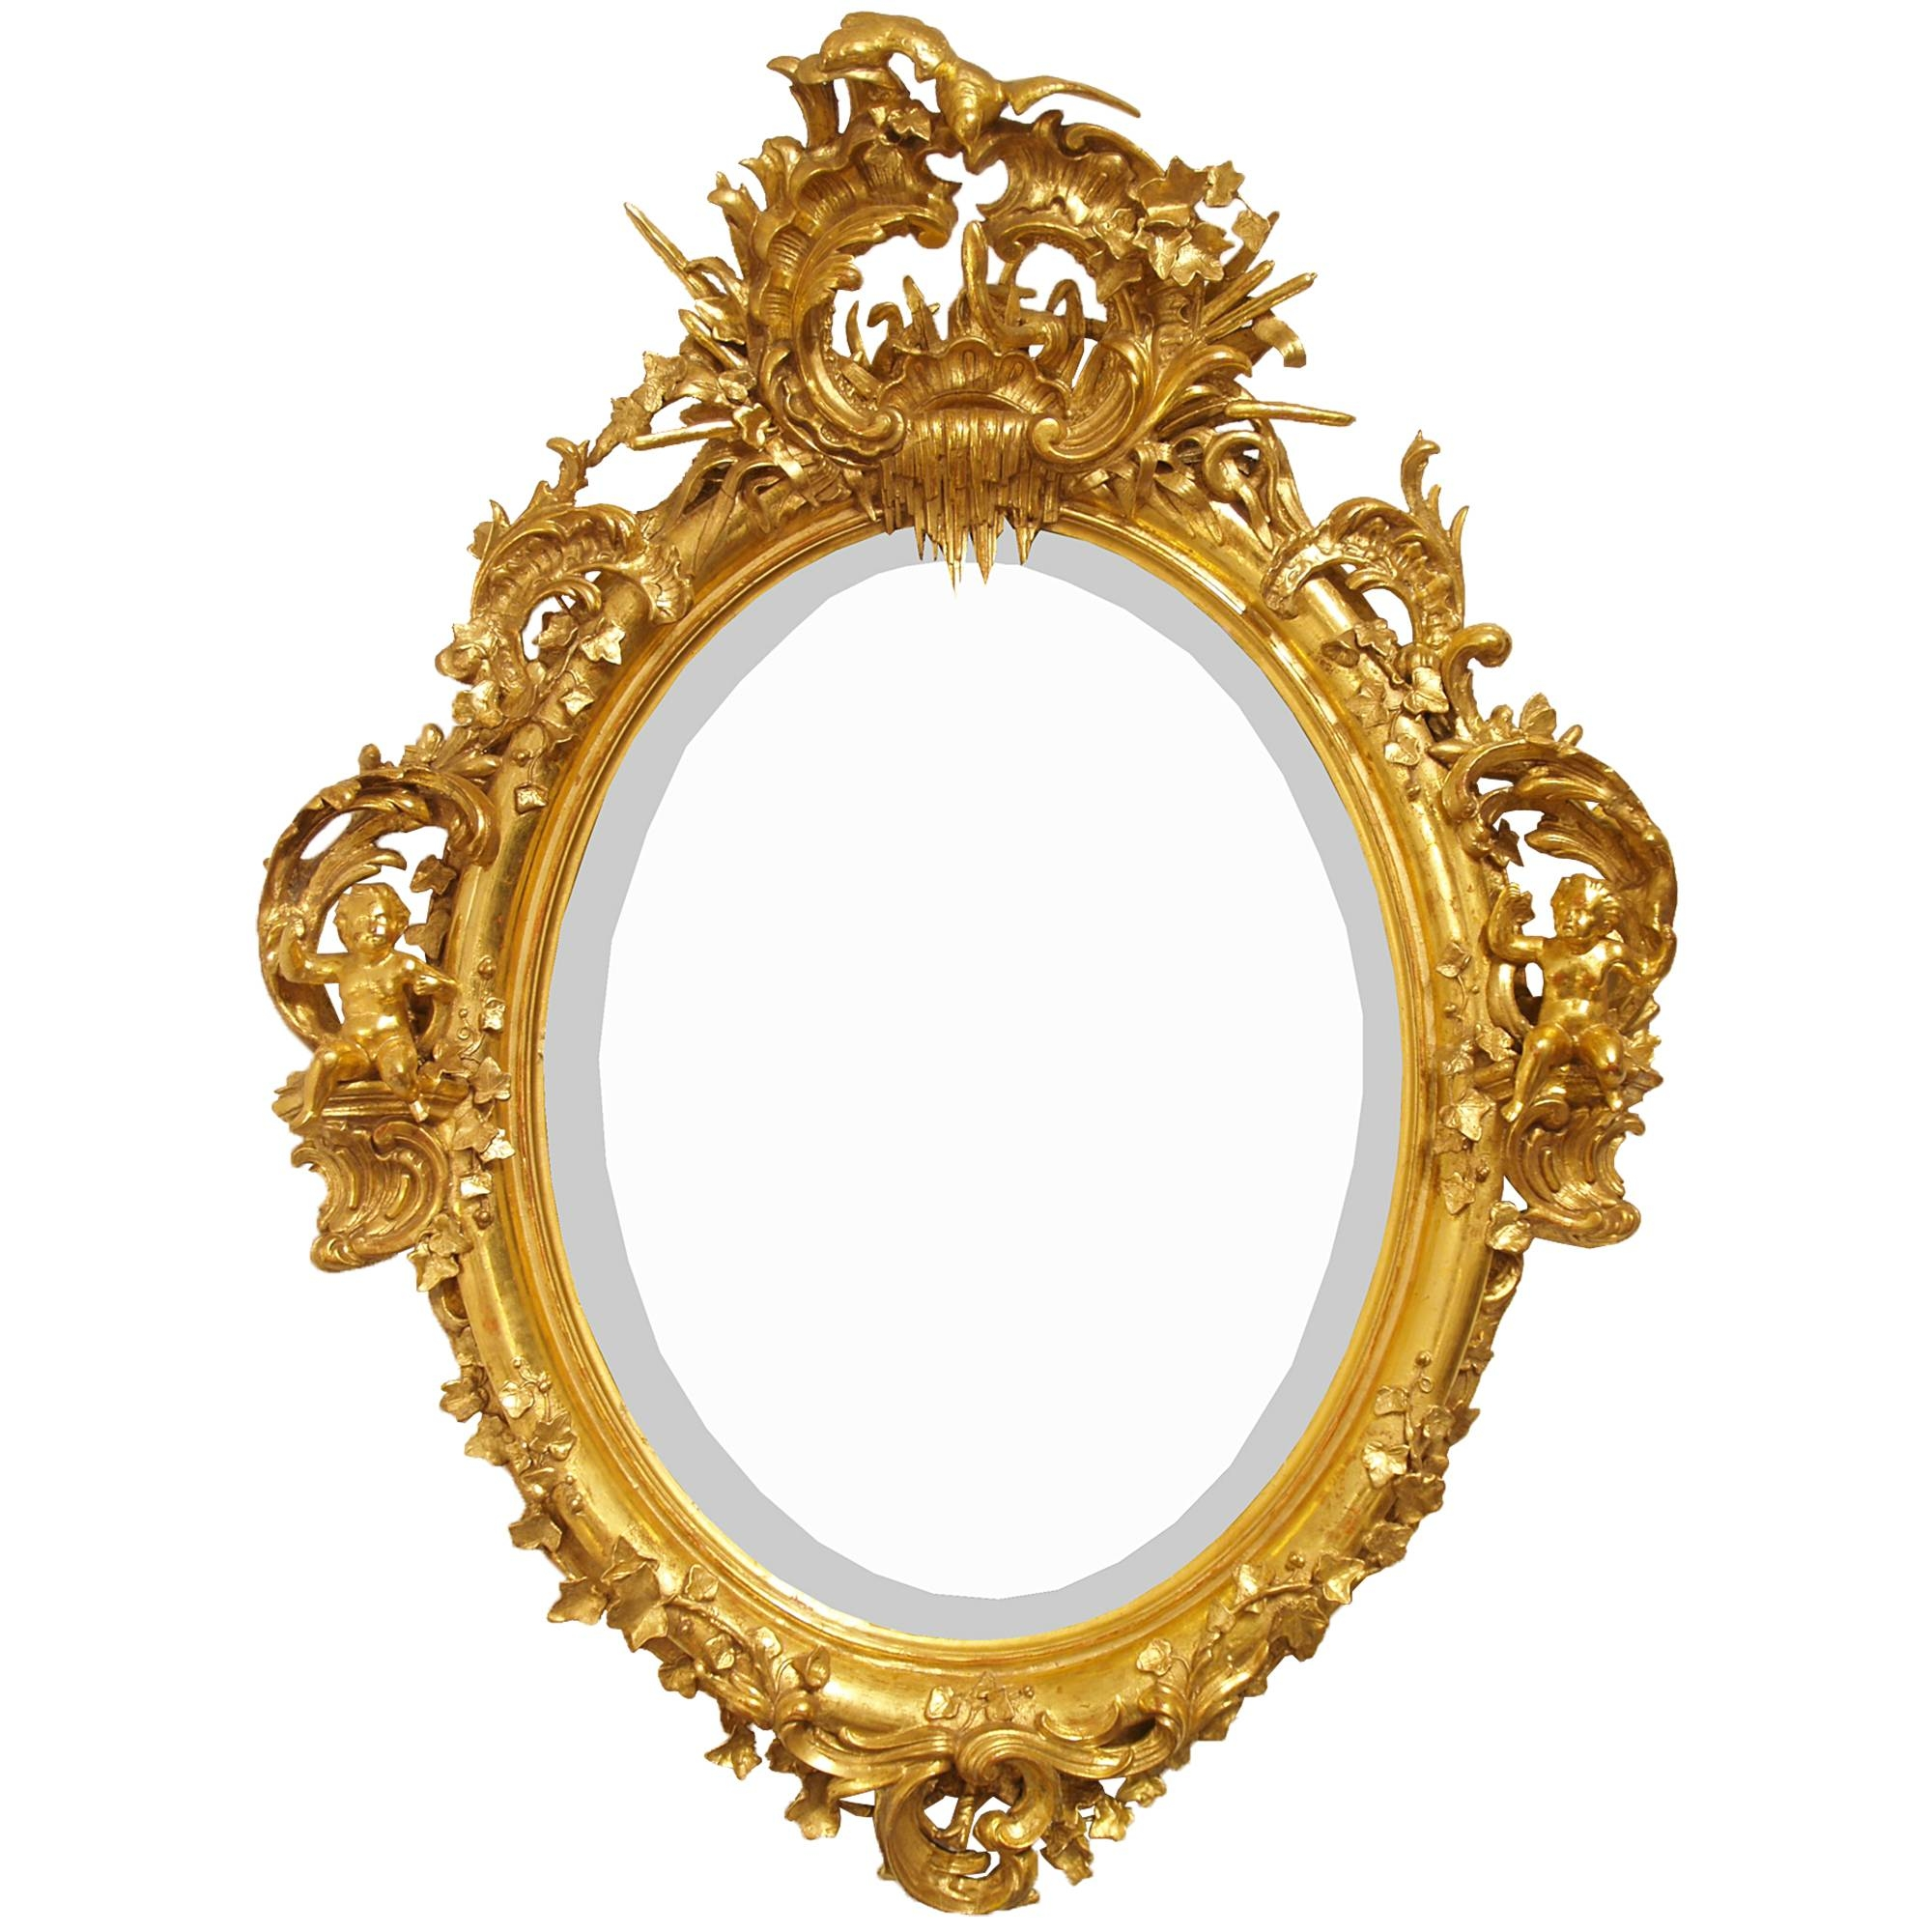 Rococo Mirror Images - Reverse Search throughout Rococo Mirrors (Image 20 of 25)